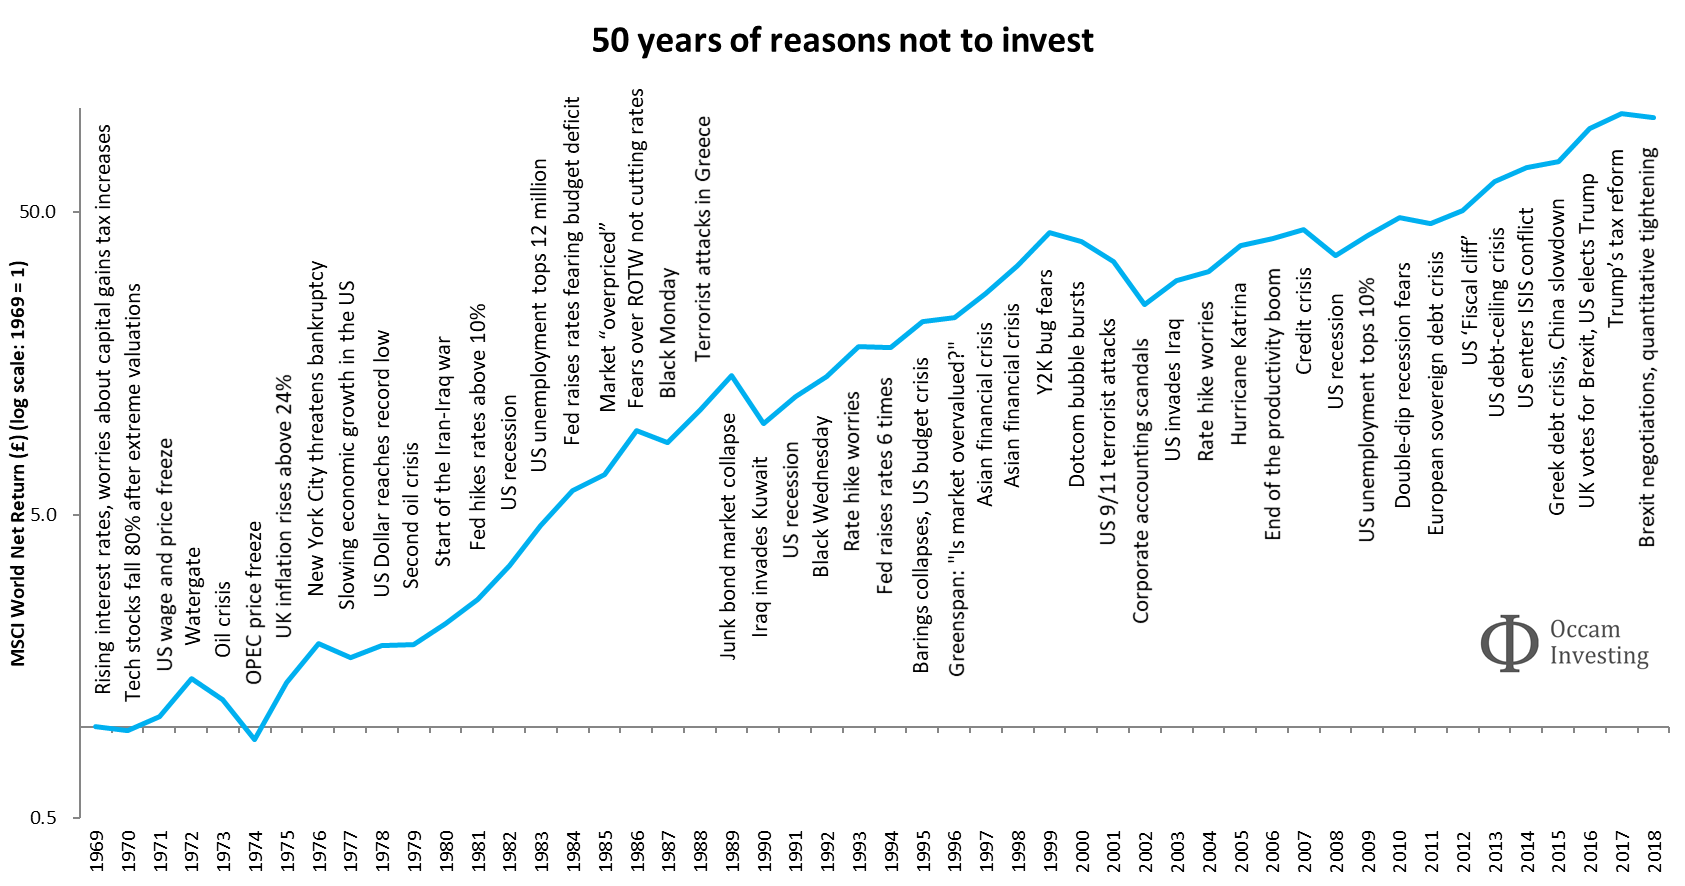 50 years of reasons not to invest